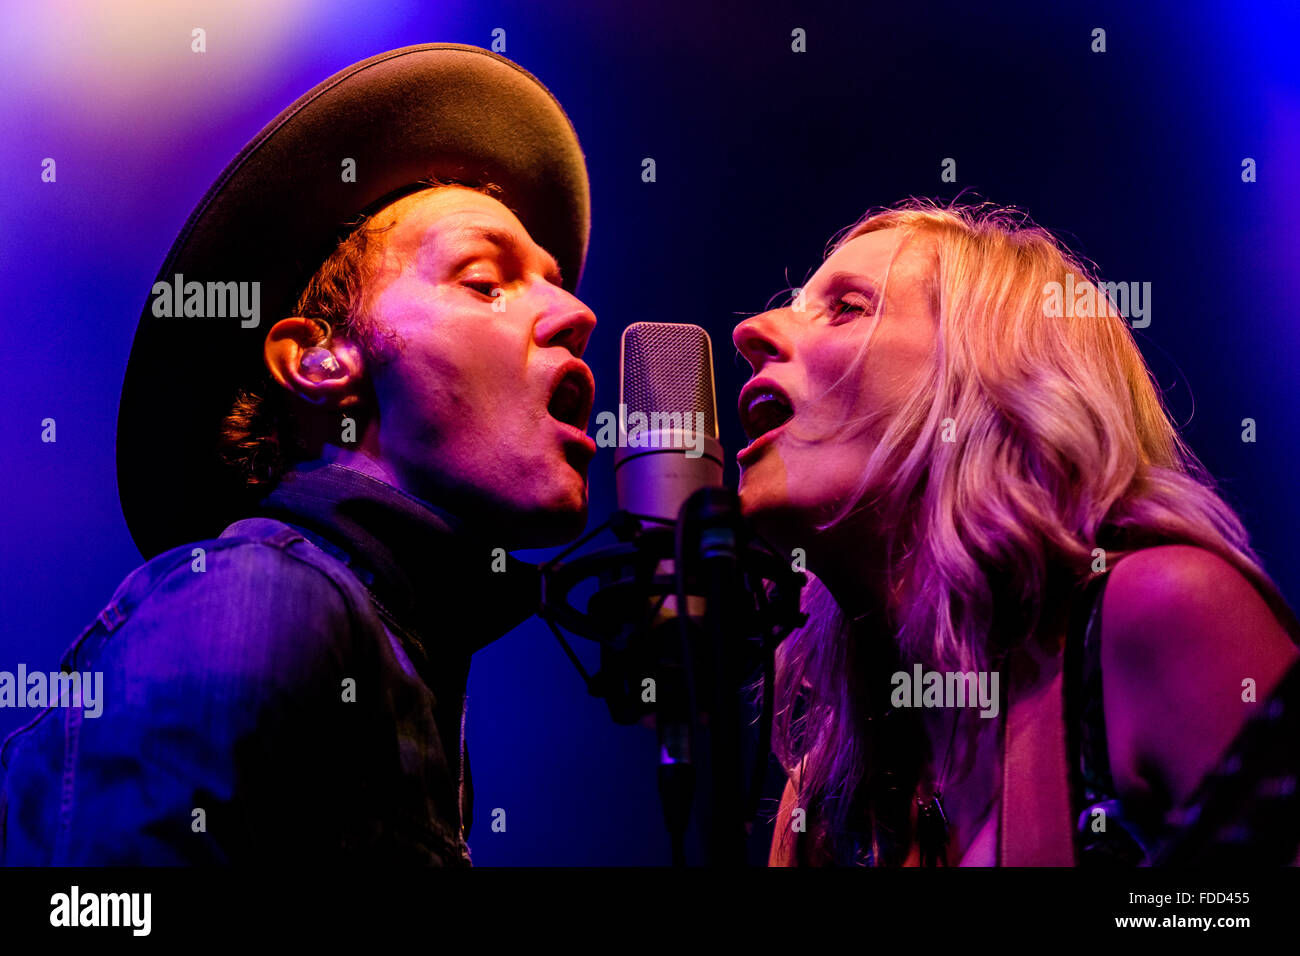 Luke Doucet and Melissa McClelland of Whitehorse at Squamish Valley Music Festival in Squamish, BC on August 9th - Stock Image